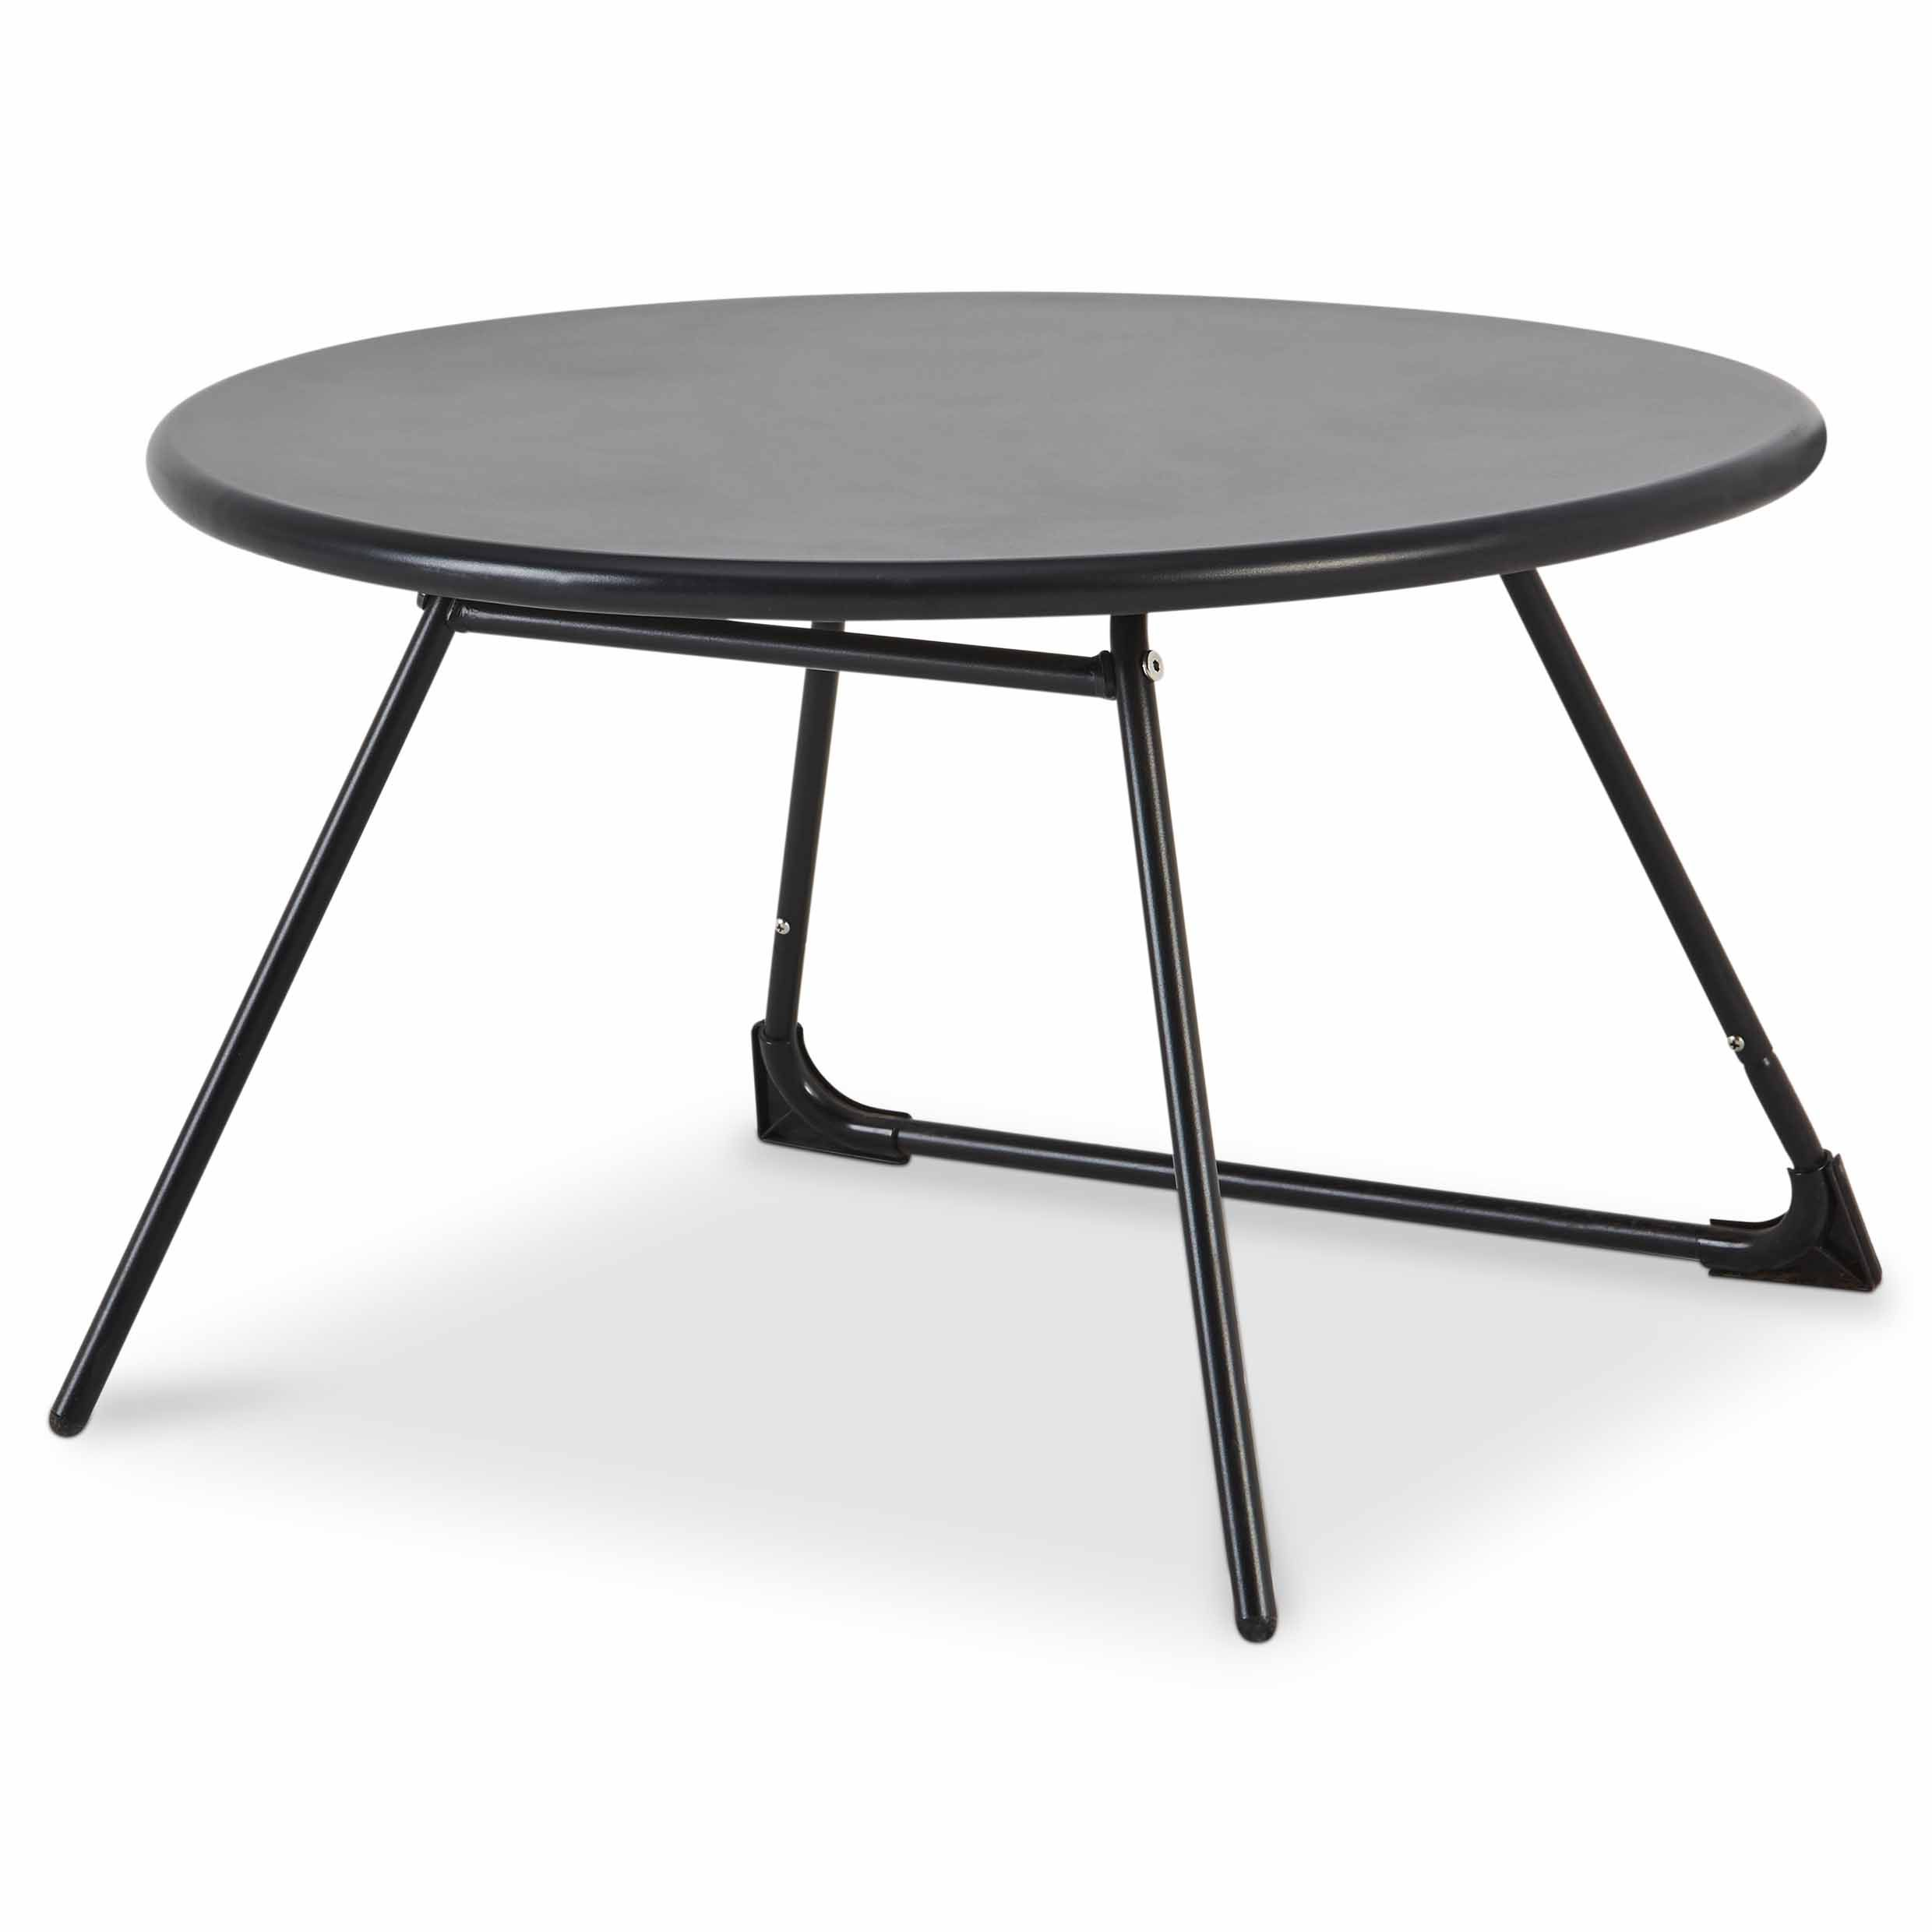 Castorama Table Basse Table Basse De Jardin Nova ø70 Cm Noir Inspirations Déco Table